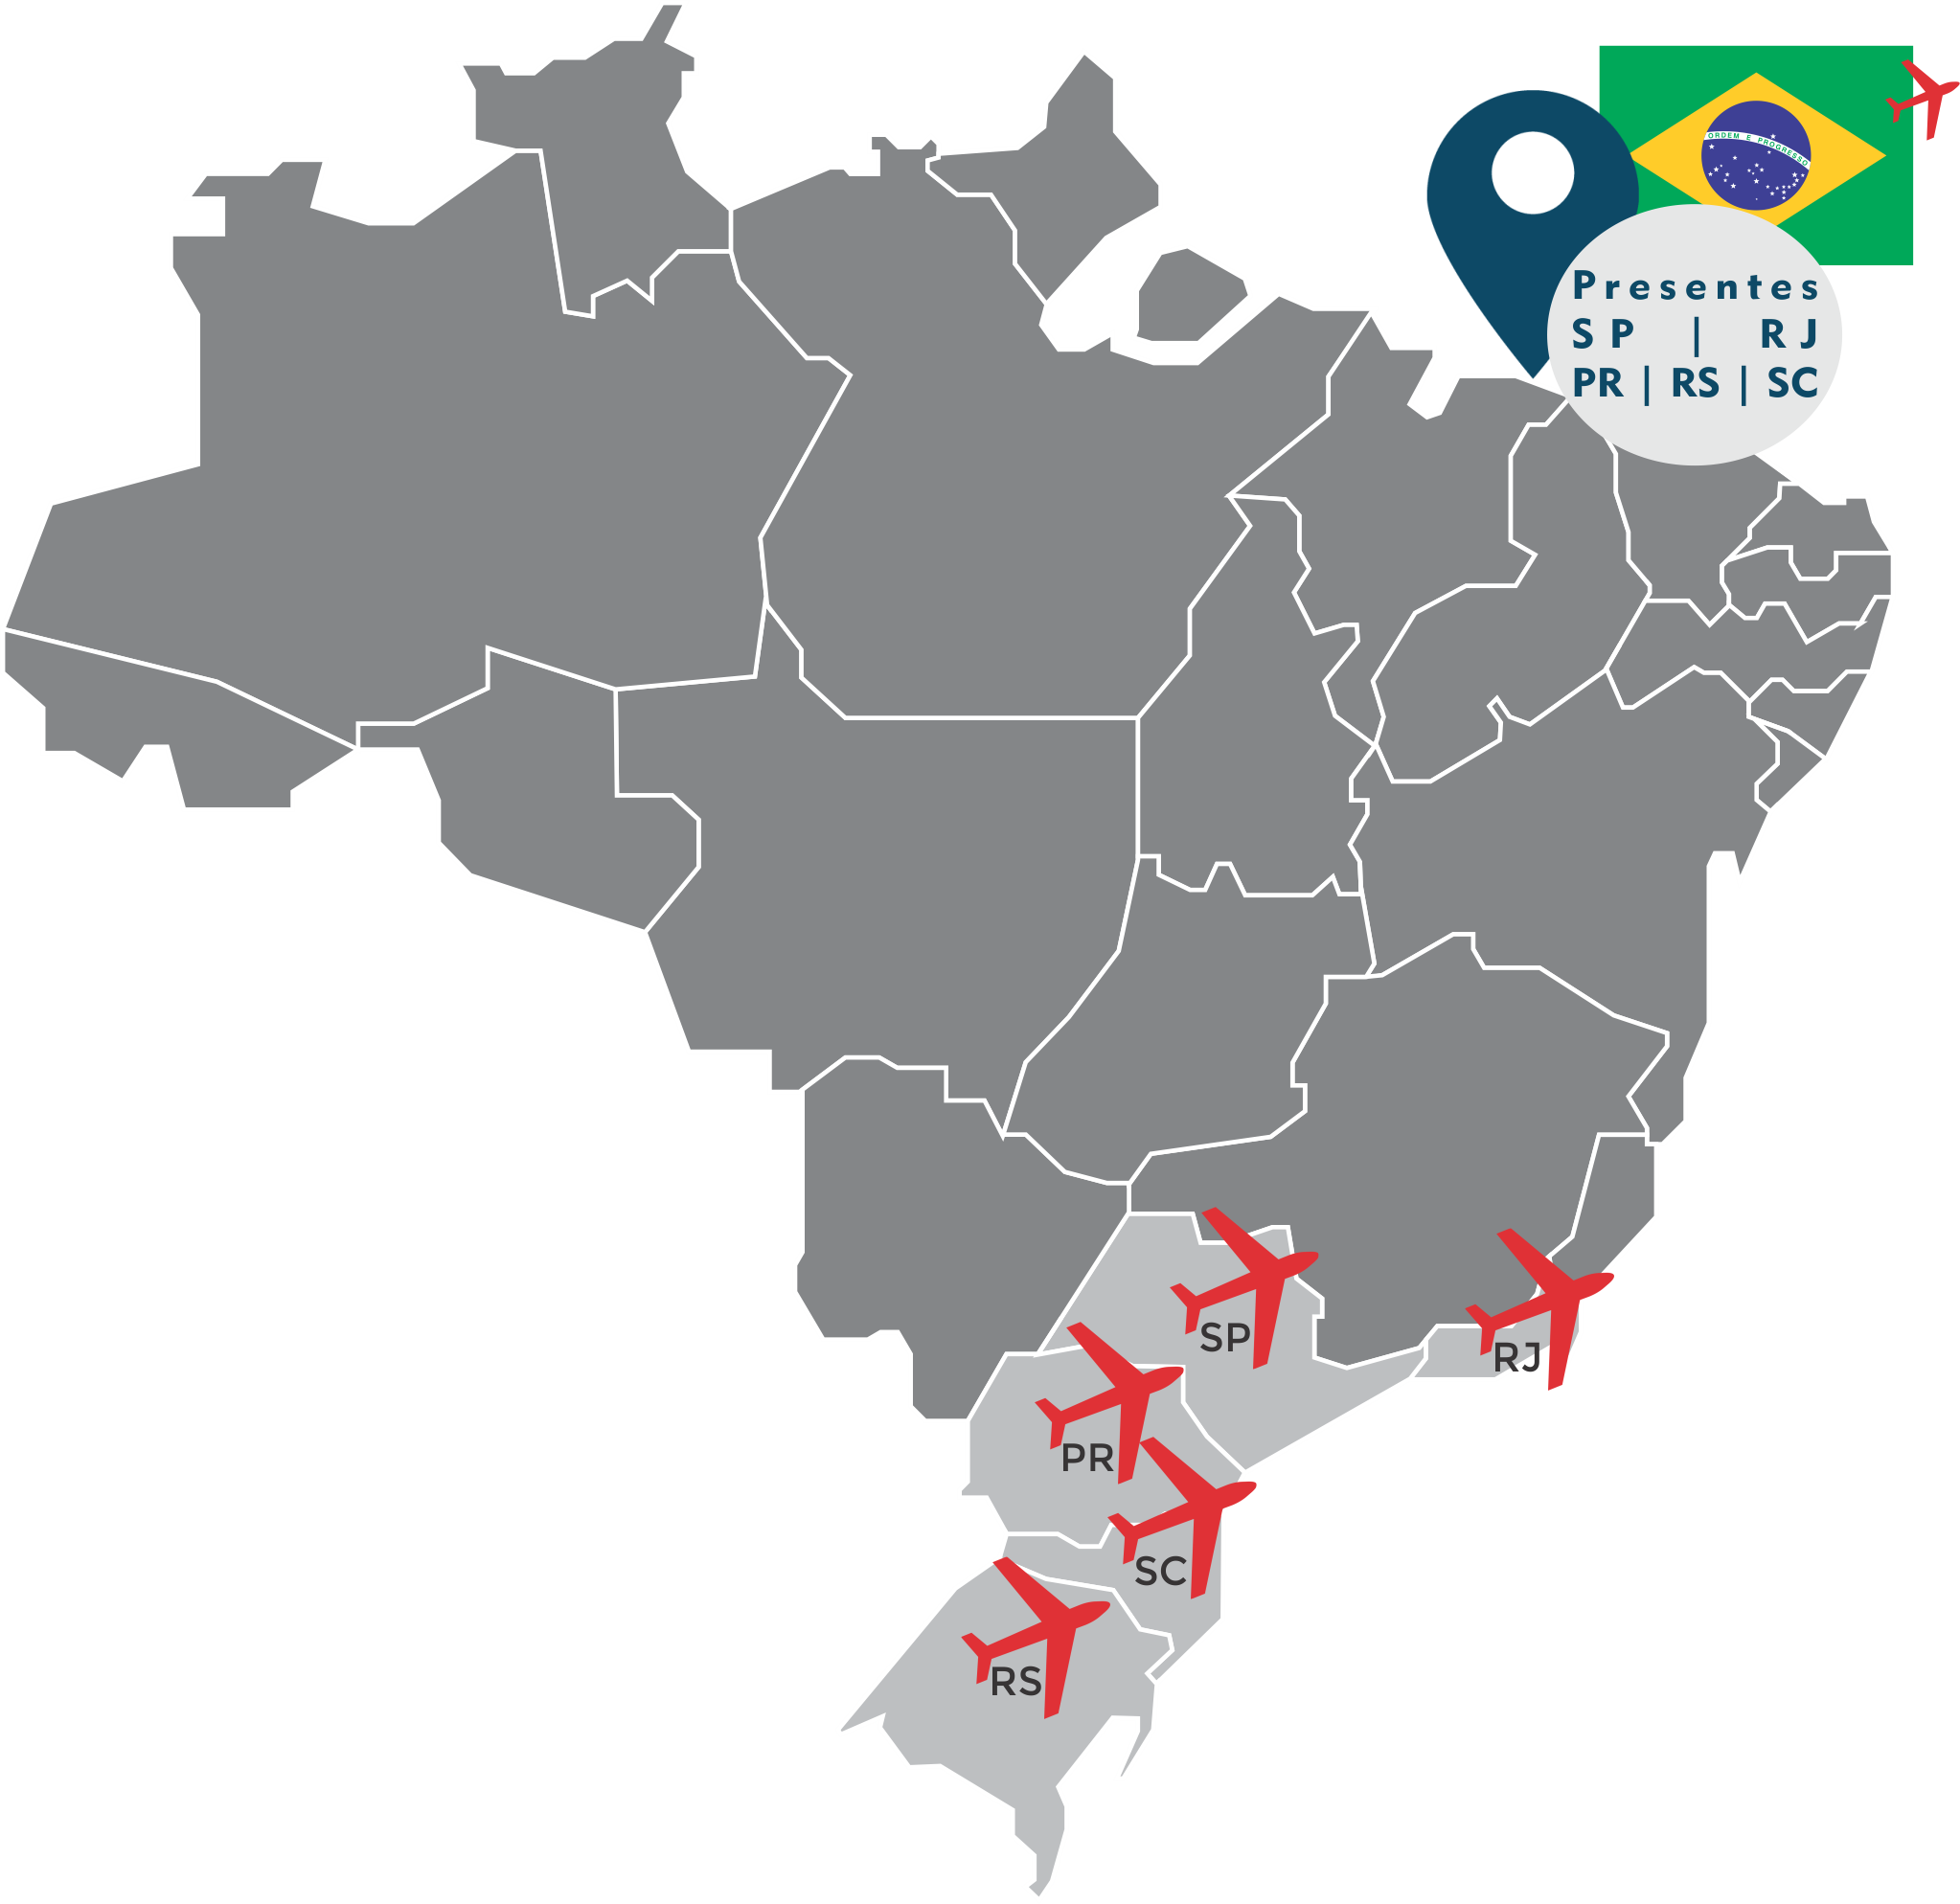 MAPA DO BRASIL TOP